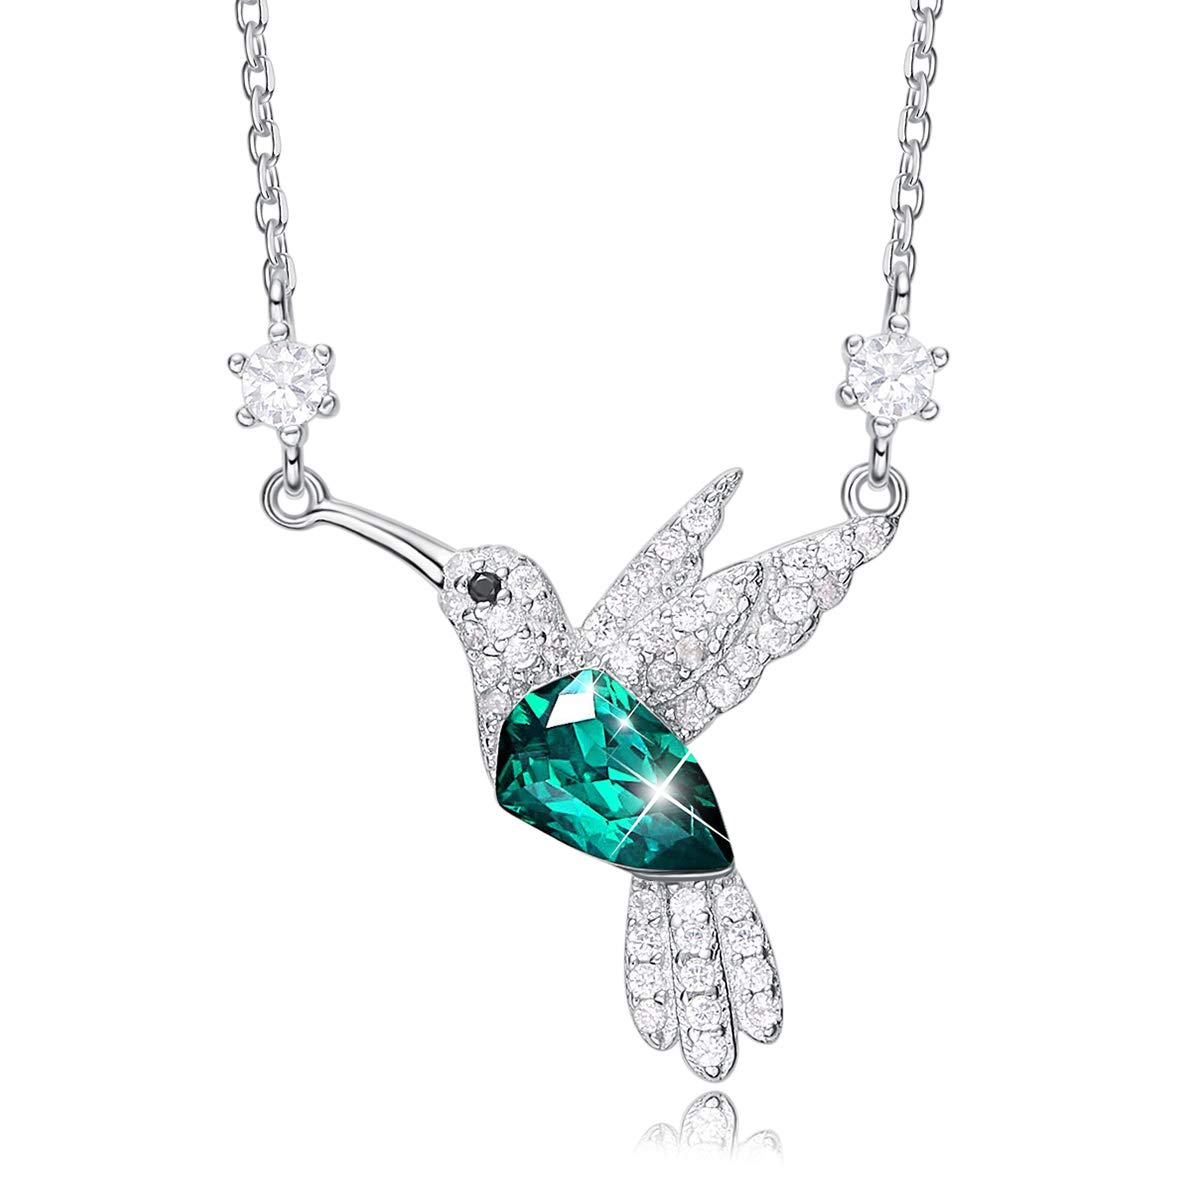 CDE Valentine Galentine Necklace Gifts for Women Hummingbird Necklaces S925 Sterling Silver Necklaces for Women Embellished with Crystals from Swarovski Jewelry for Women, Animal Necklace Gifts for Ladies Girlfriend and Mom